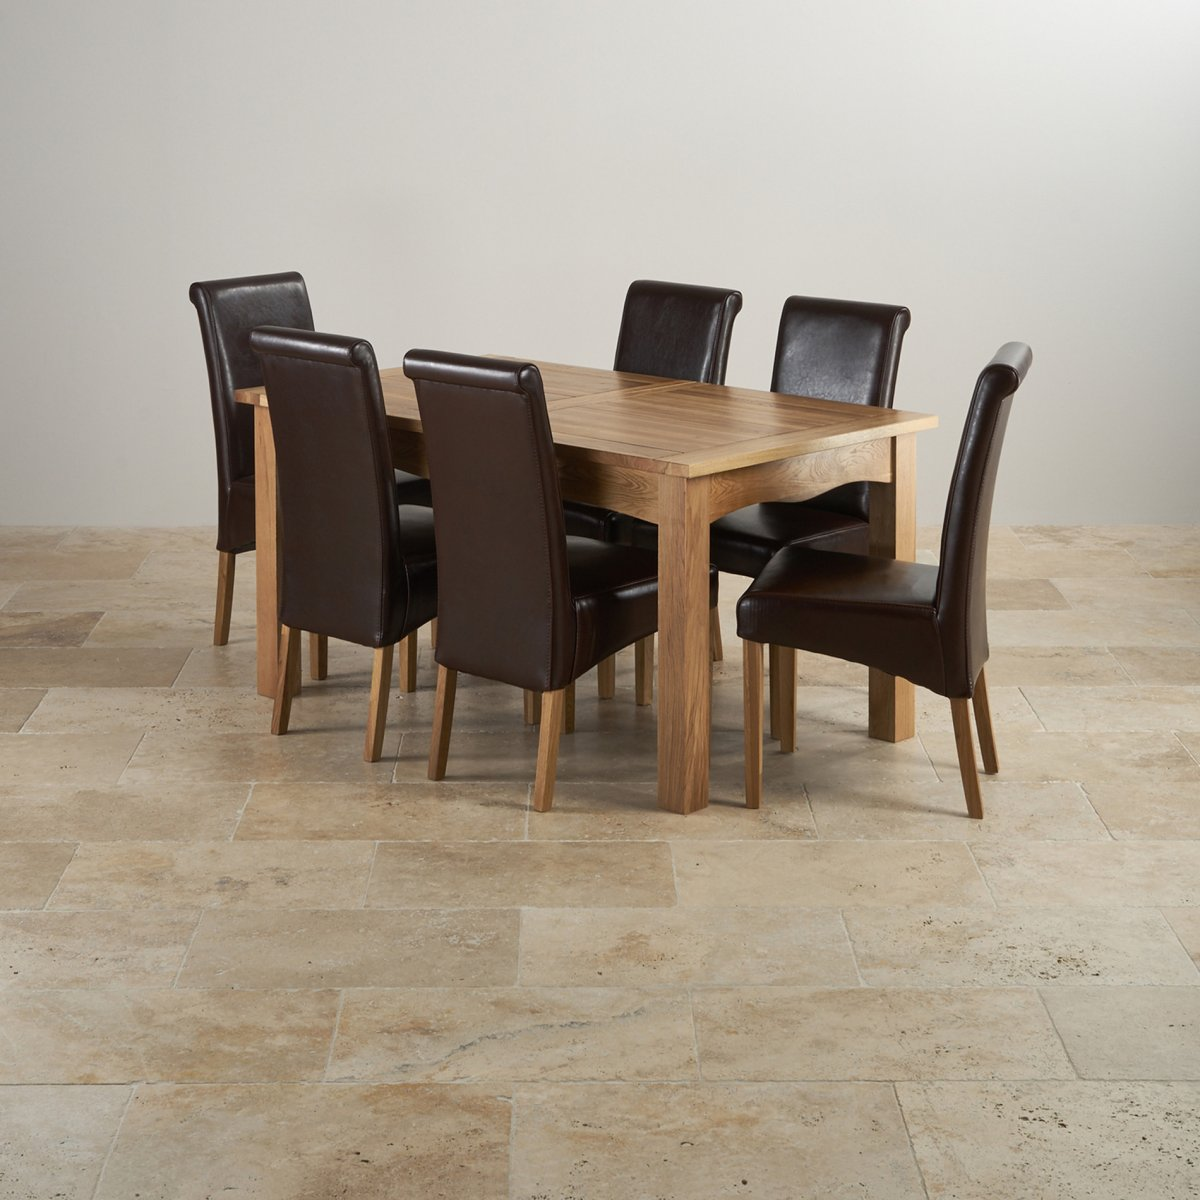 Oak Dining Room Furniture: Cairo Extending Dining Set In Oak: Table + 6 Leather Chairs